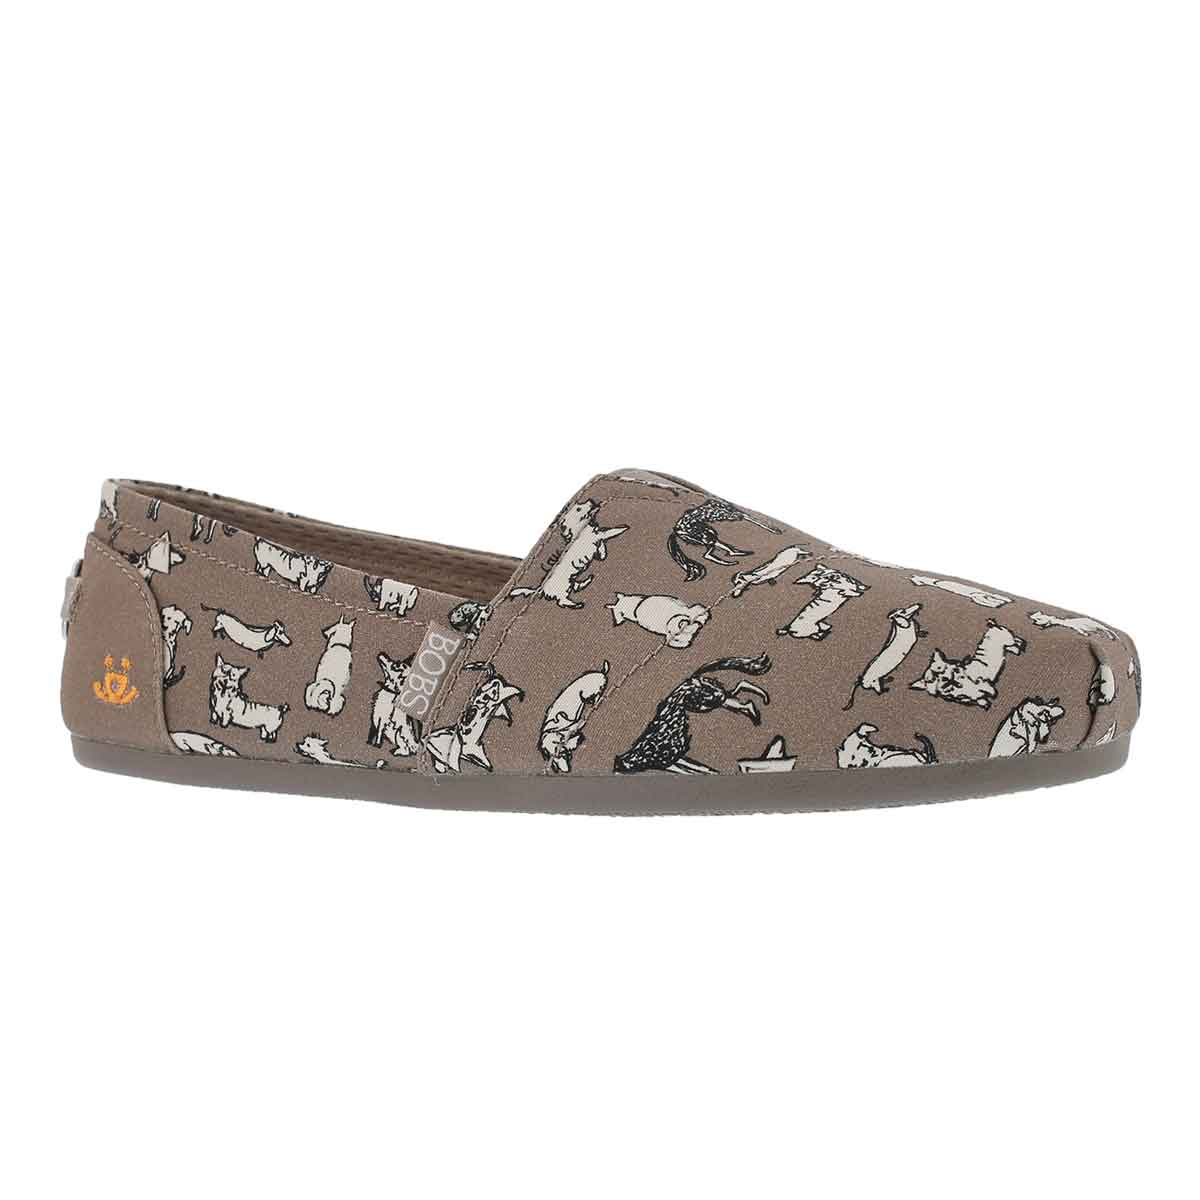 Women's BOBS PLUSH DREAM DOODLE taupe slip ons